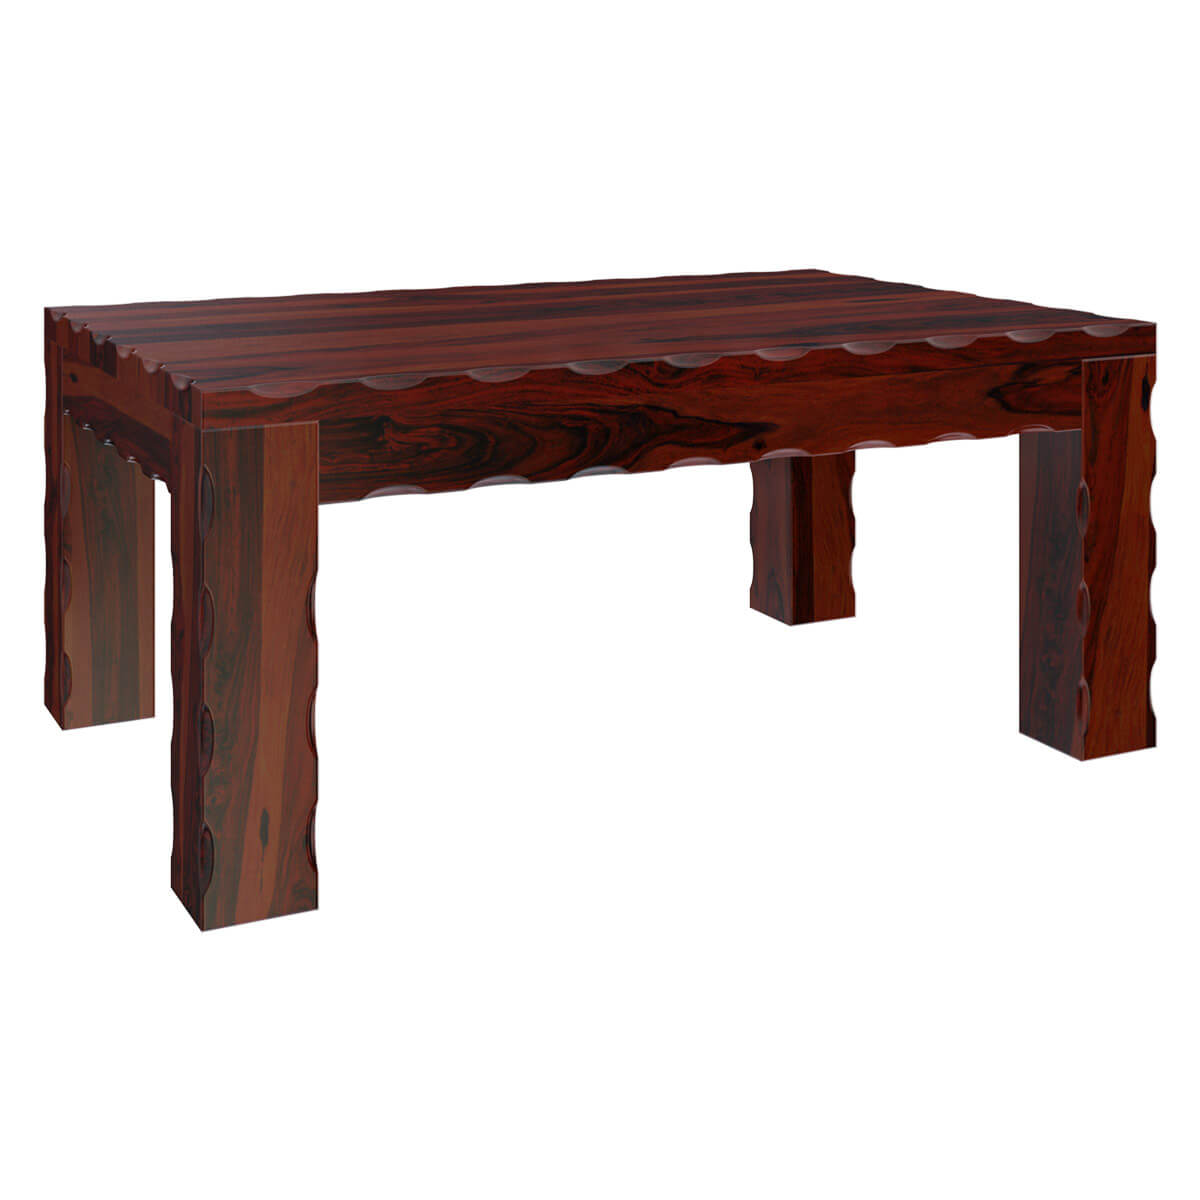 Yakima contemporary style solid wood large rustic coffee table for Modern style coffee tables